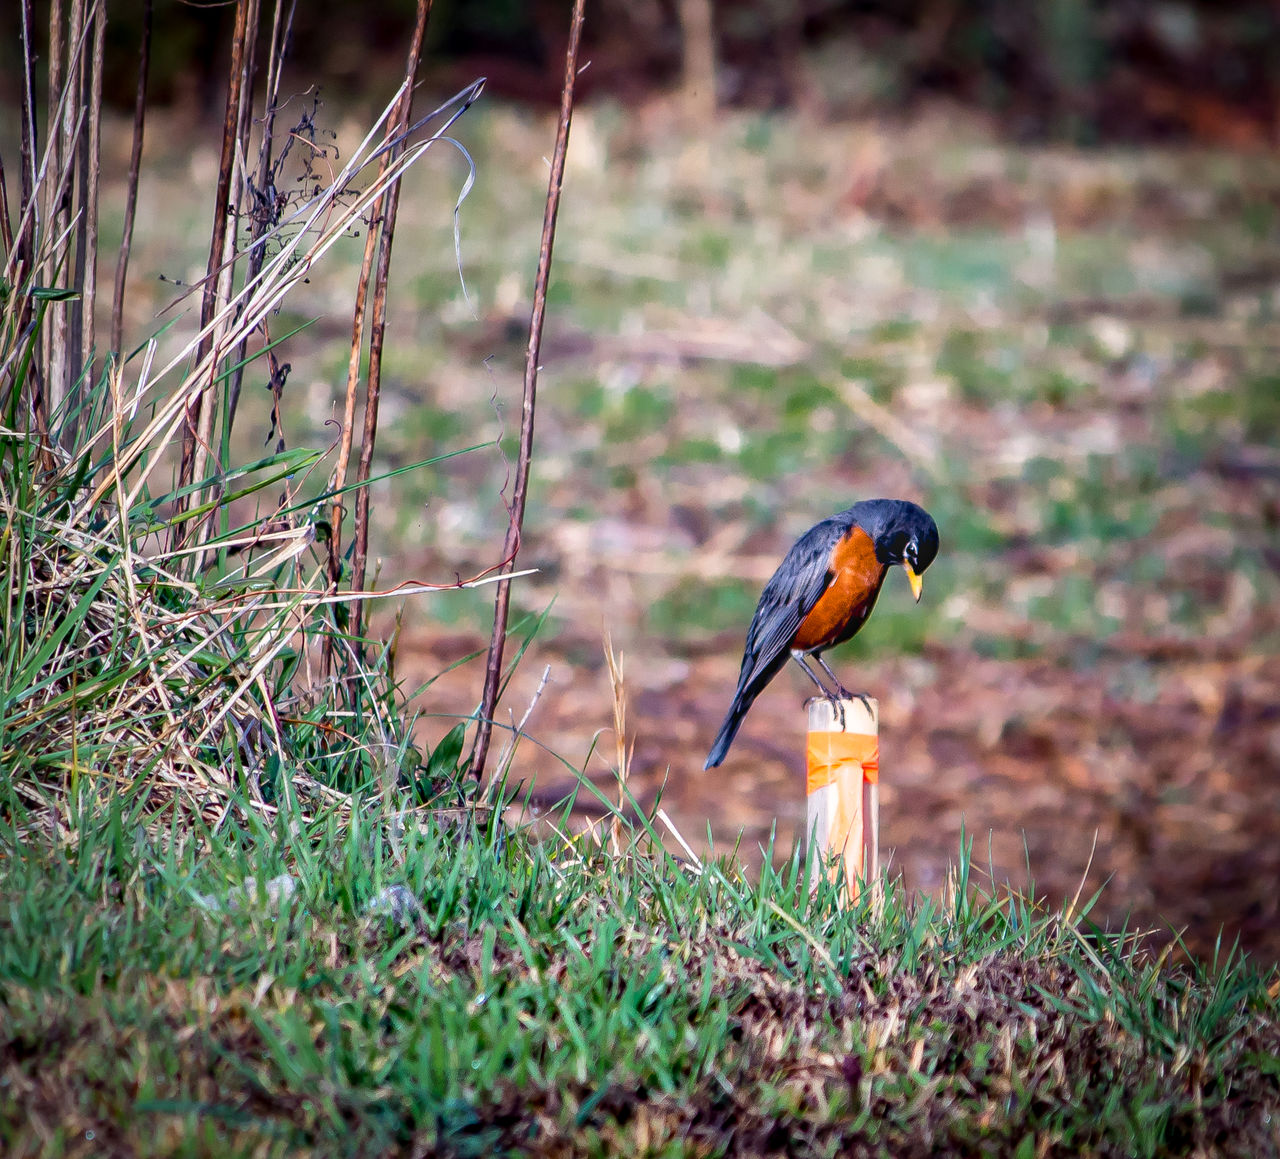 Robin perches Animal Wildlife Bird Day Grass Nature One Animal Outdoors Perching Robin Spring